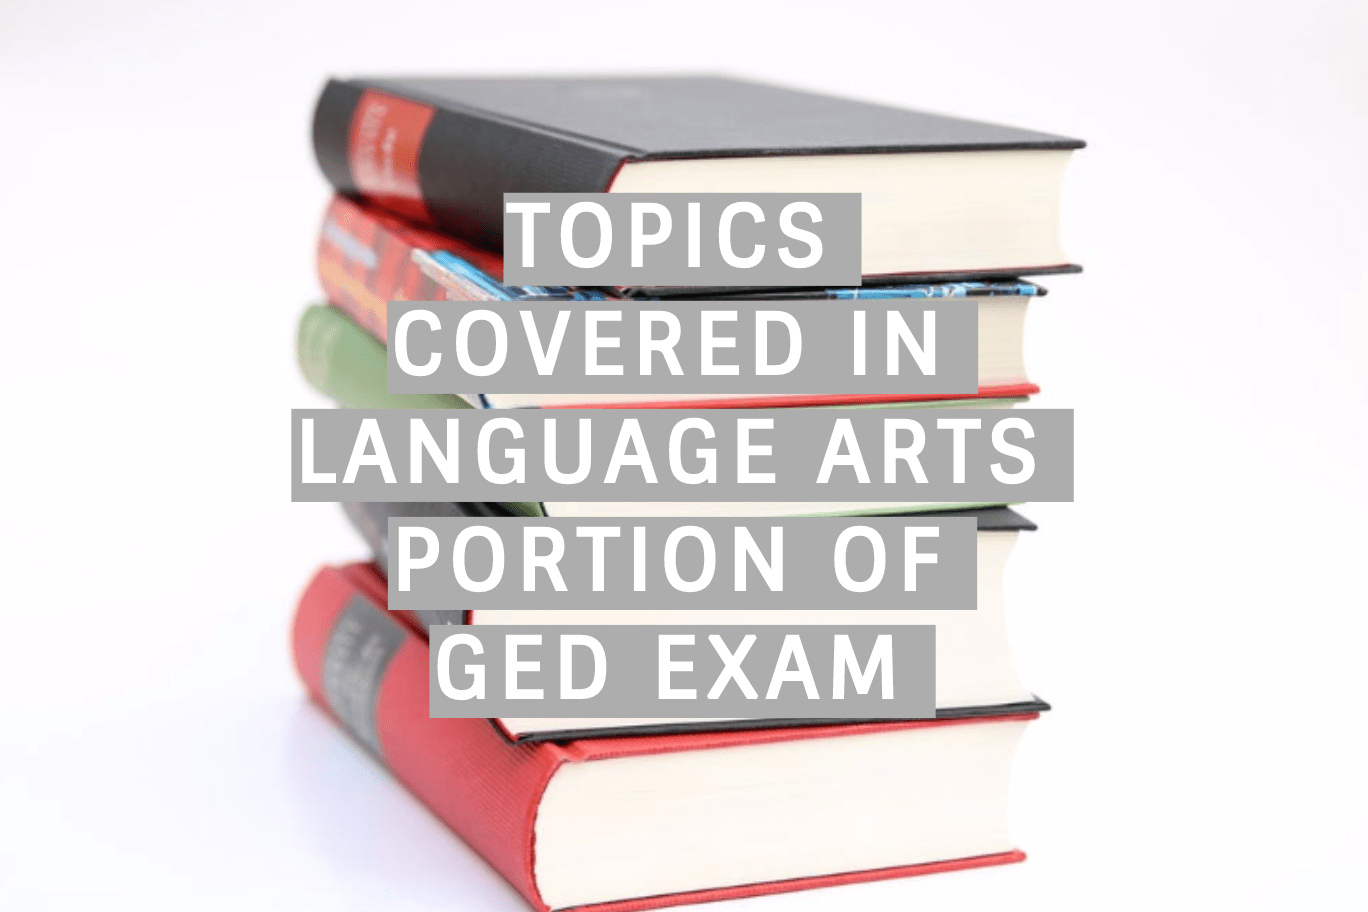 Topics Covered In Language Arts Portion Of Ged Exam